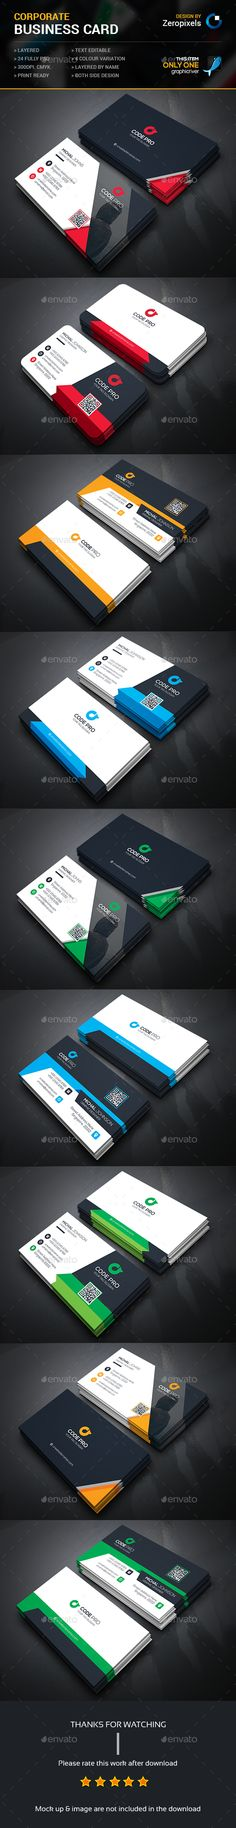 Corporate Business Card Templates PSD Bundle. Download here: http://graphicriver.net/item/corporate-business-card-bundle/15914825?ref=ksioks